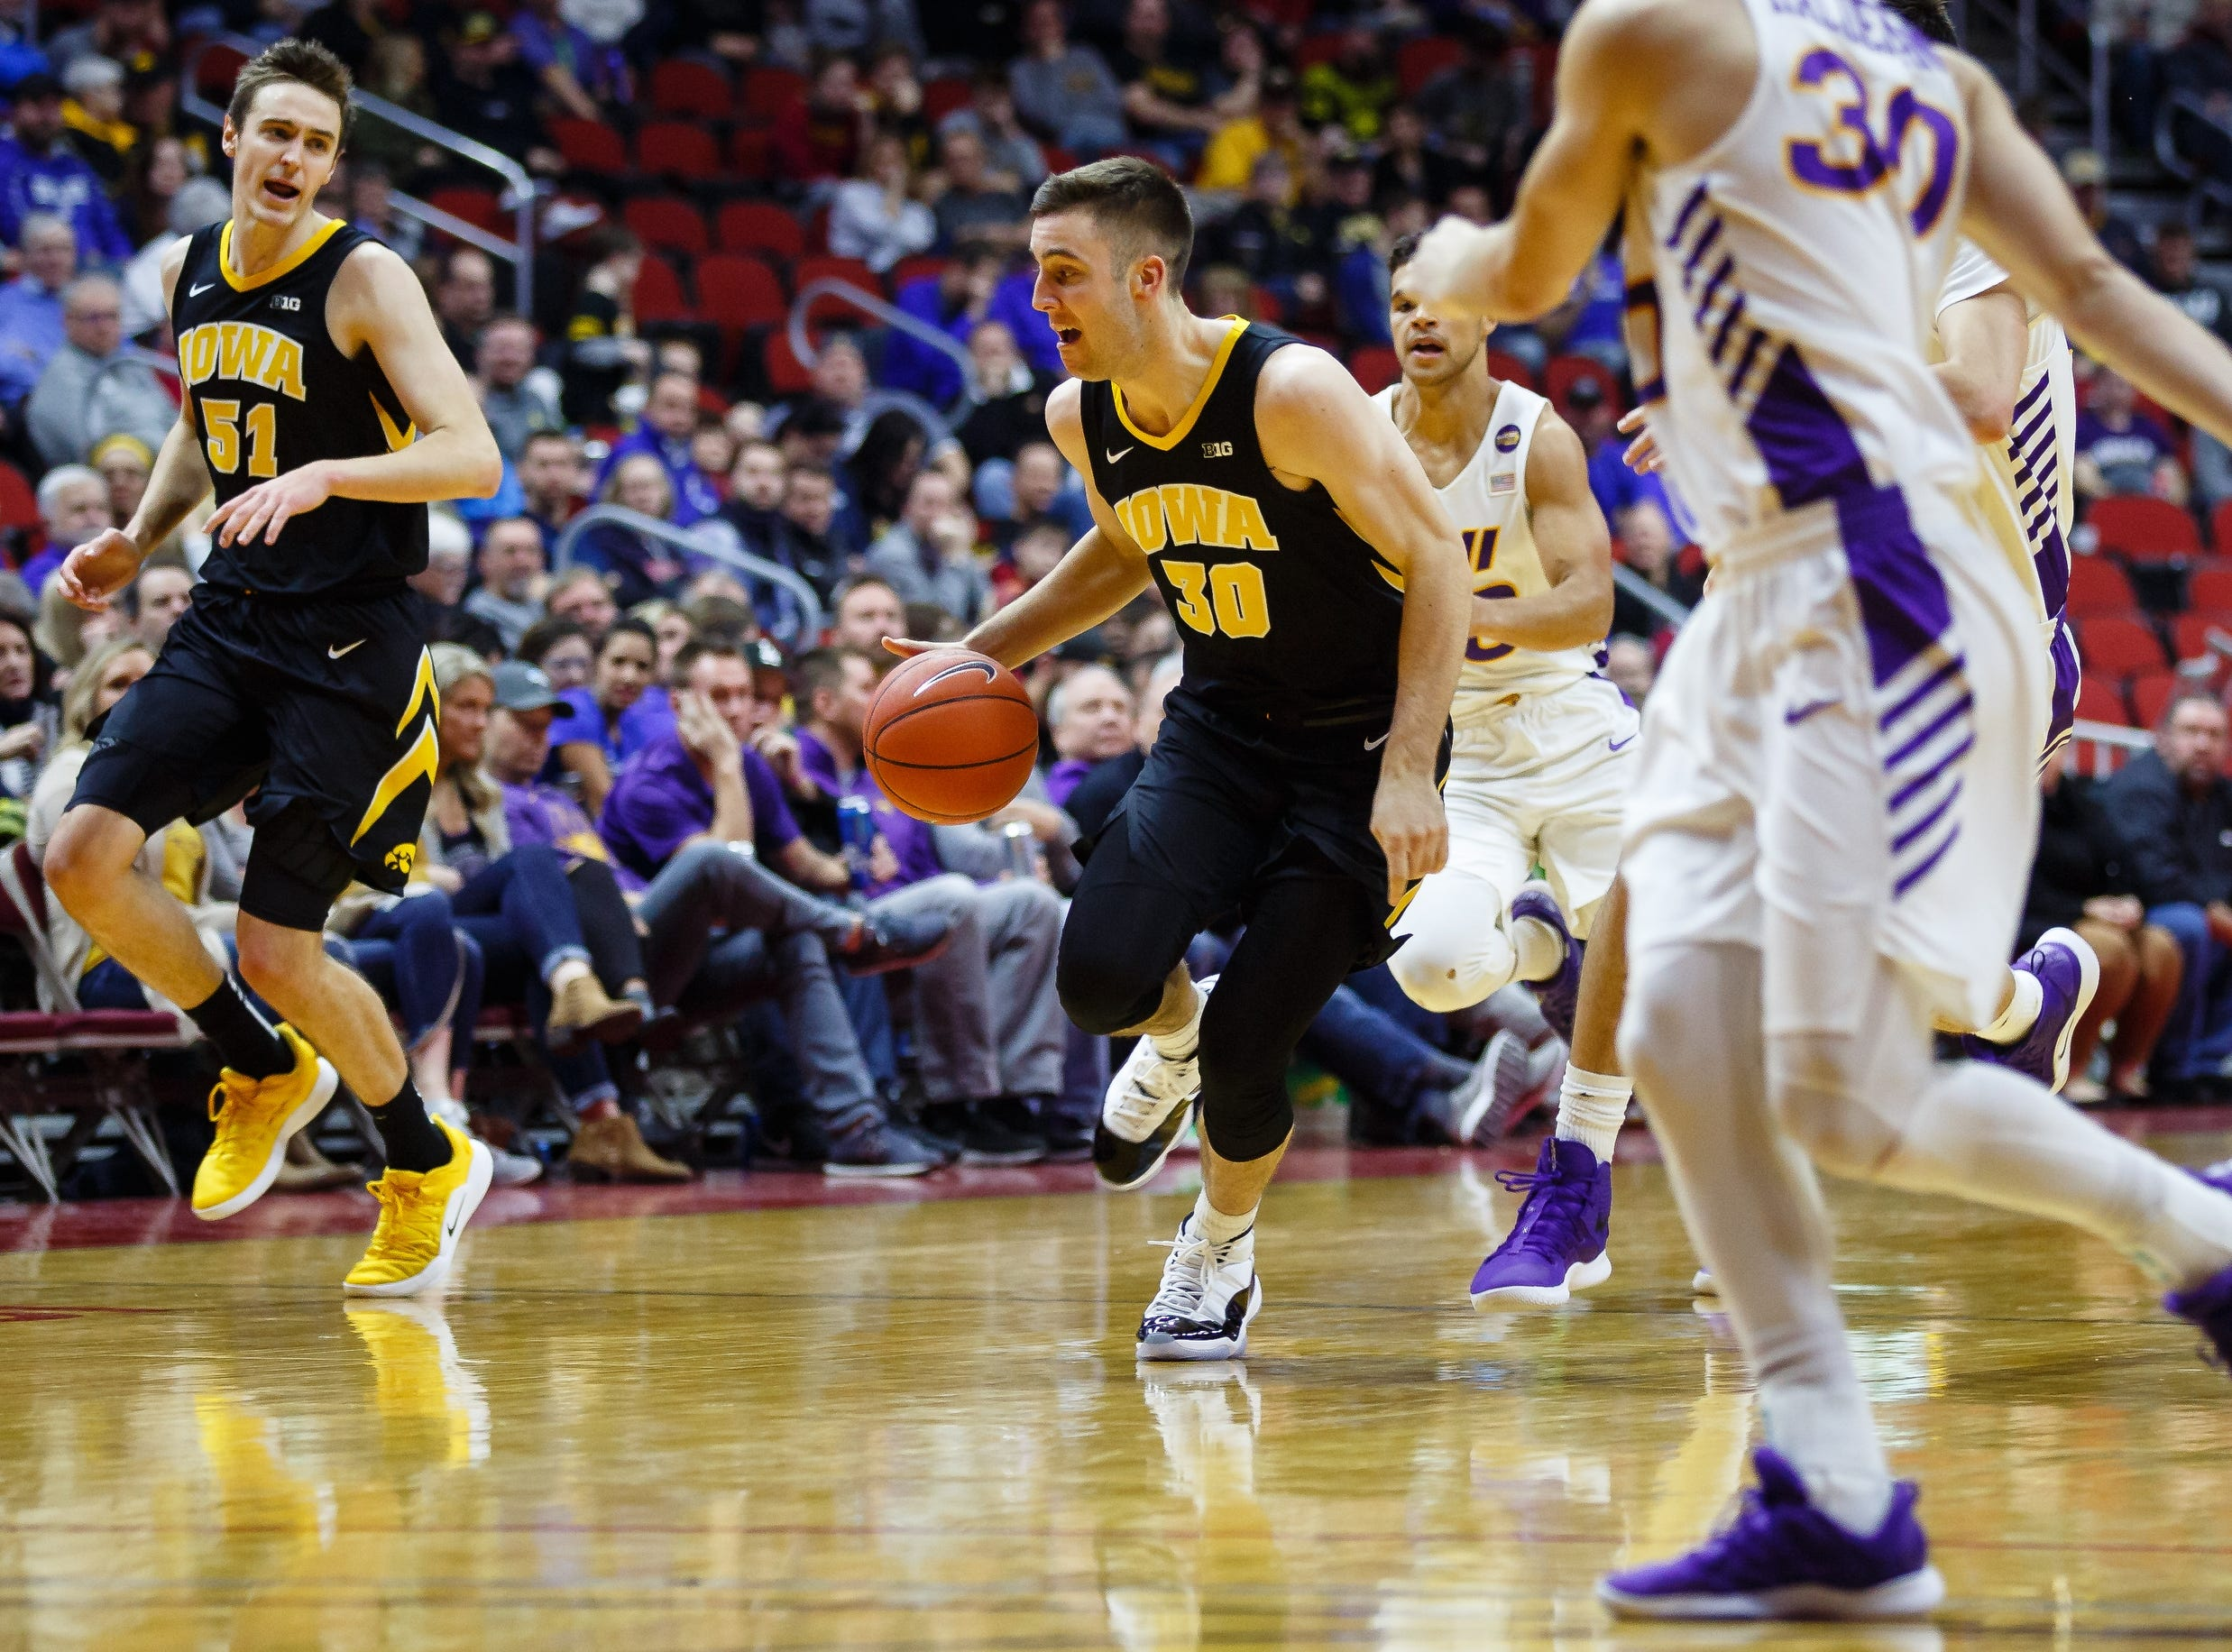 Iowa's Connor McCaffery (30) dribbles during their basketball game at the Hy-Vee Classic on Saturday, Dec. 15, 2018, in Des Moines. Iowa would go on to defeat UNI 77-54.